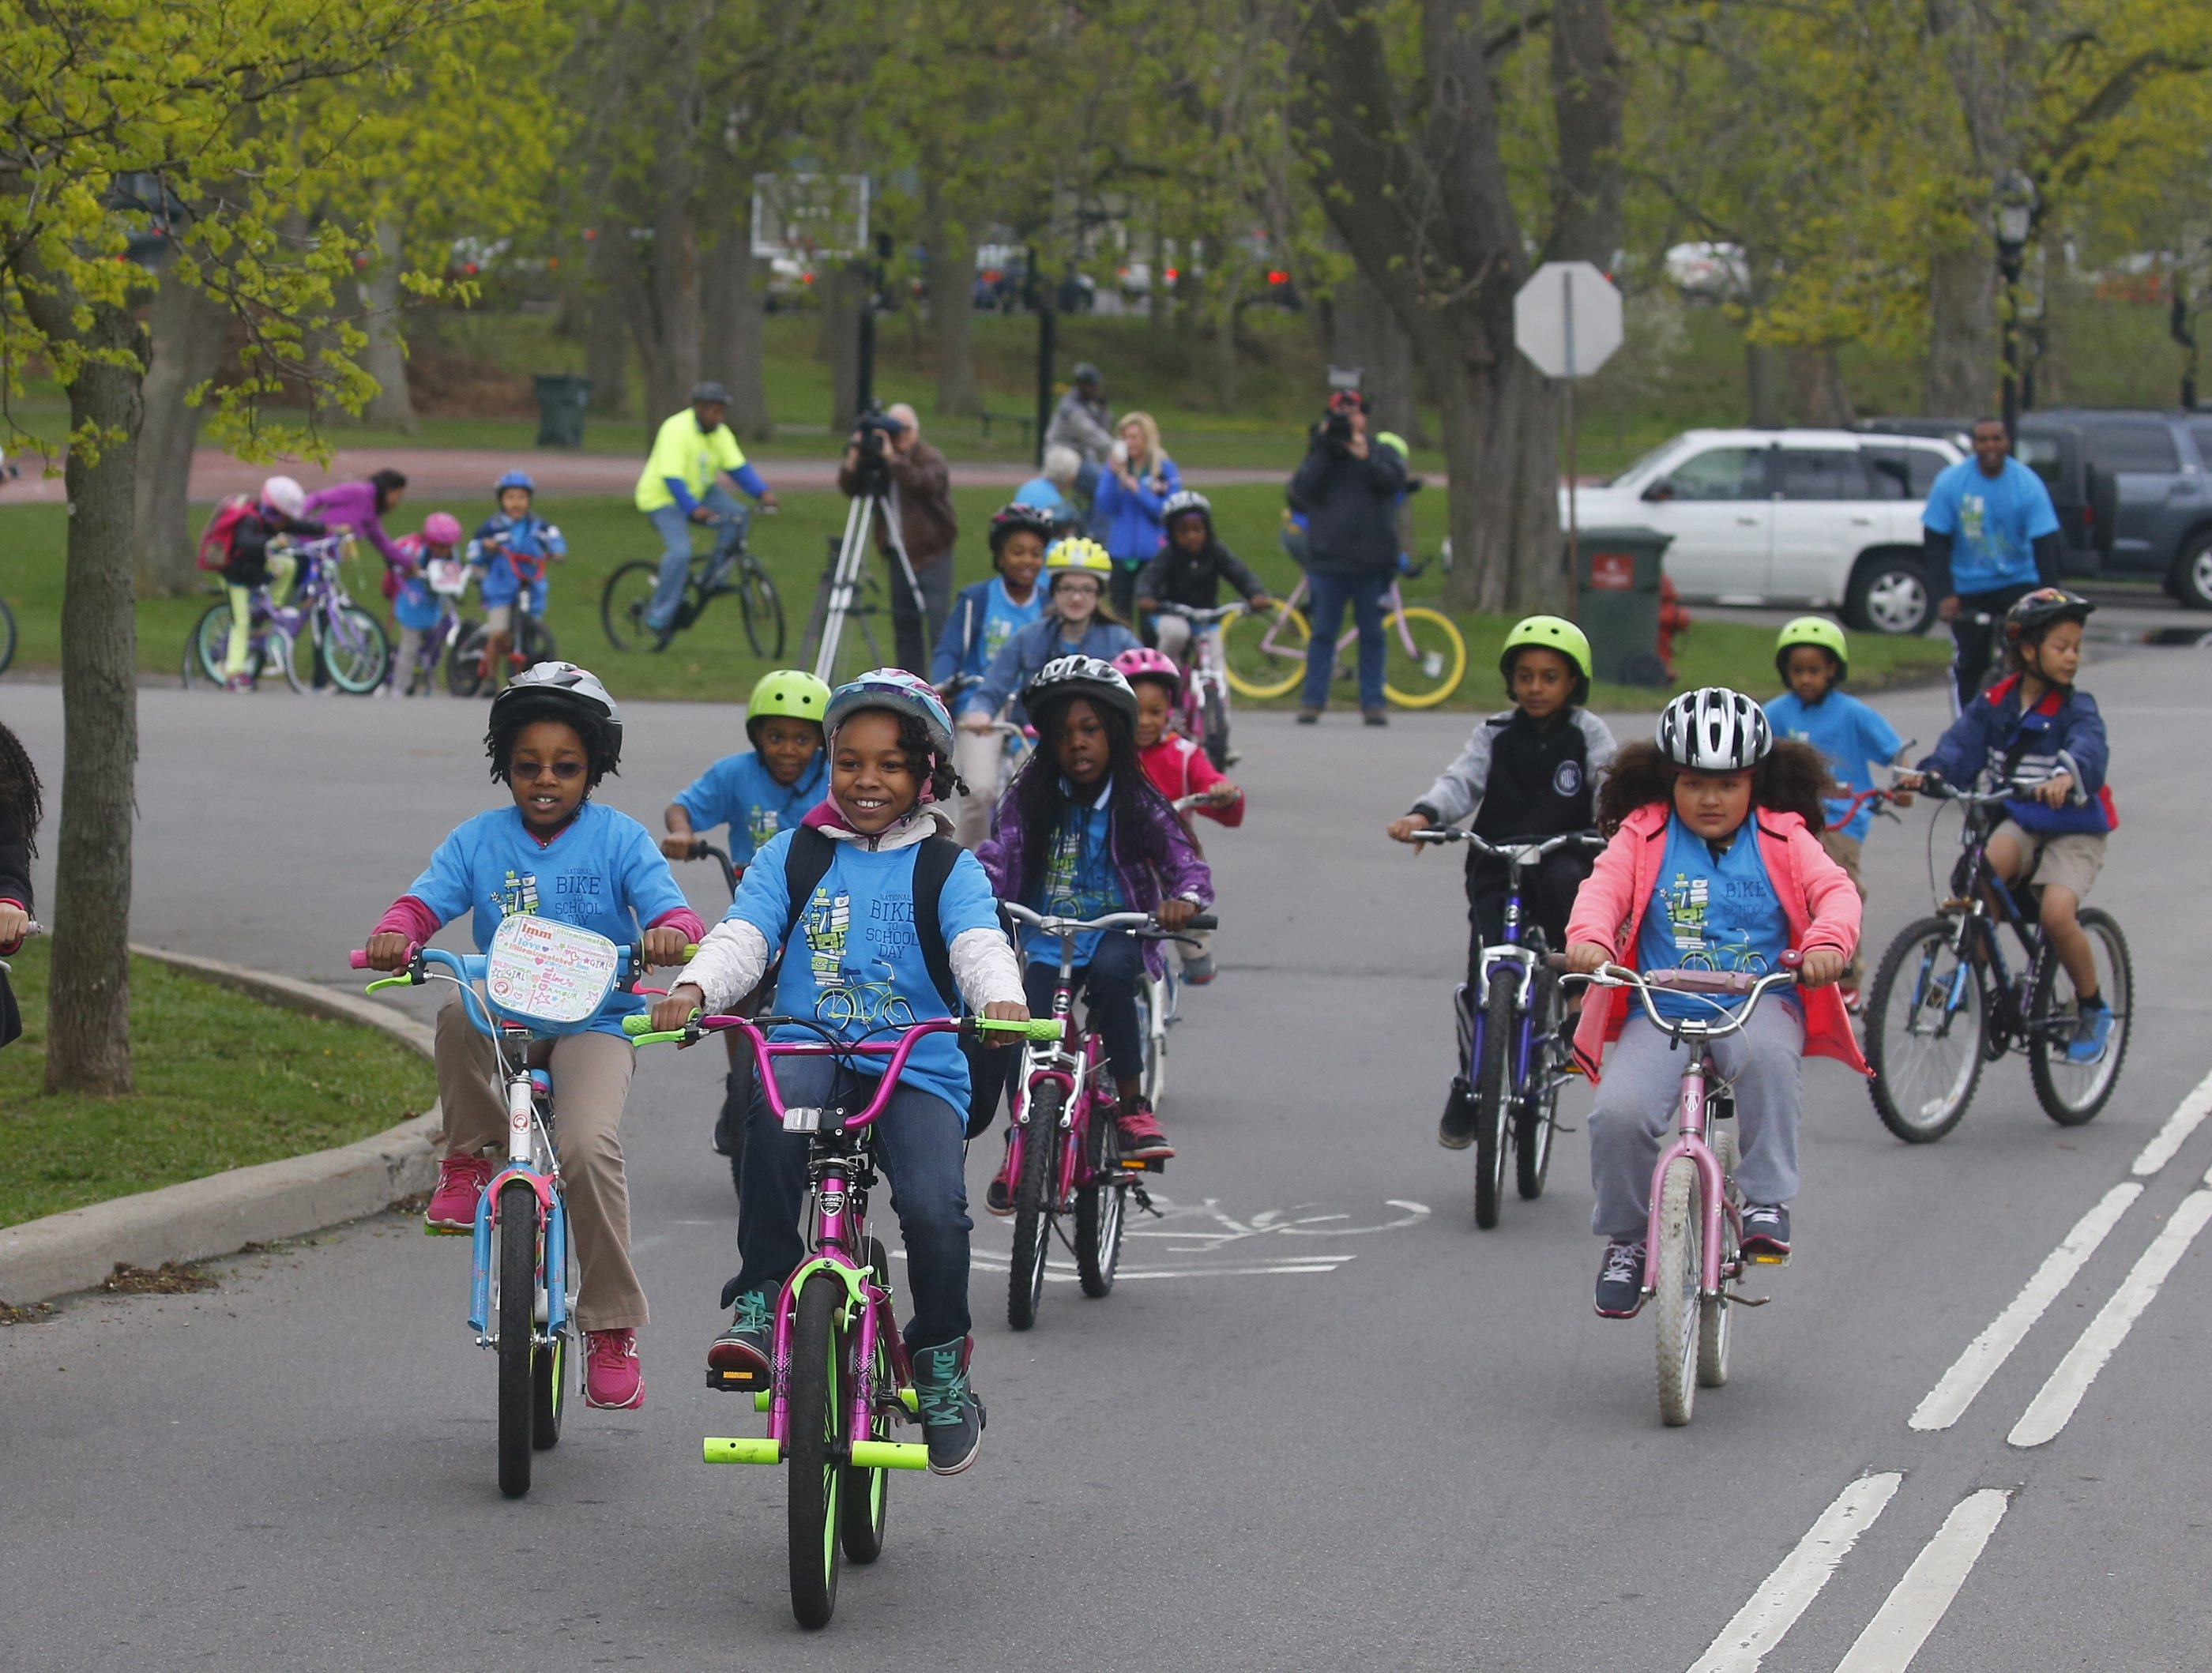 School 54 students met Tuesday at the Jewett Parkway entrance to Delaware Park, marking Bike to School Day, an initiative of the Buffalo Public Schools and GOBike Buffalo.